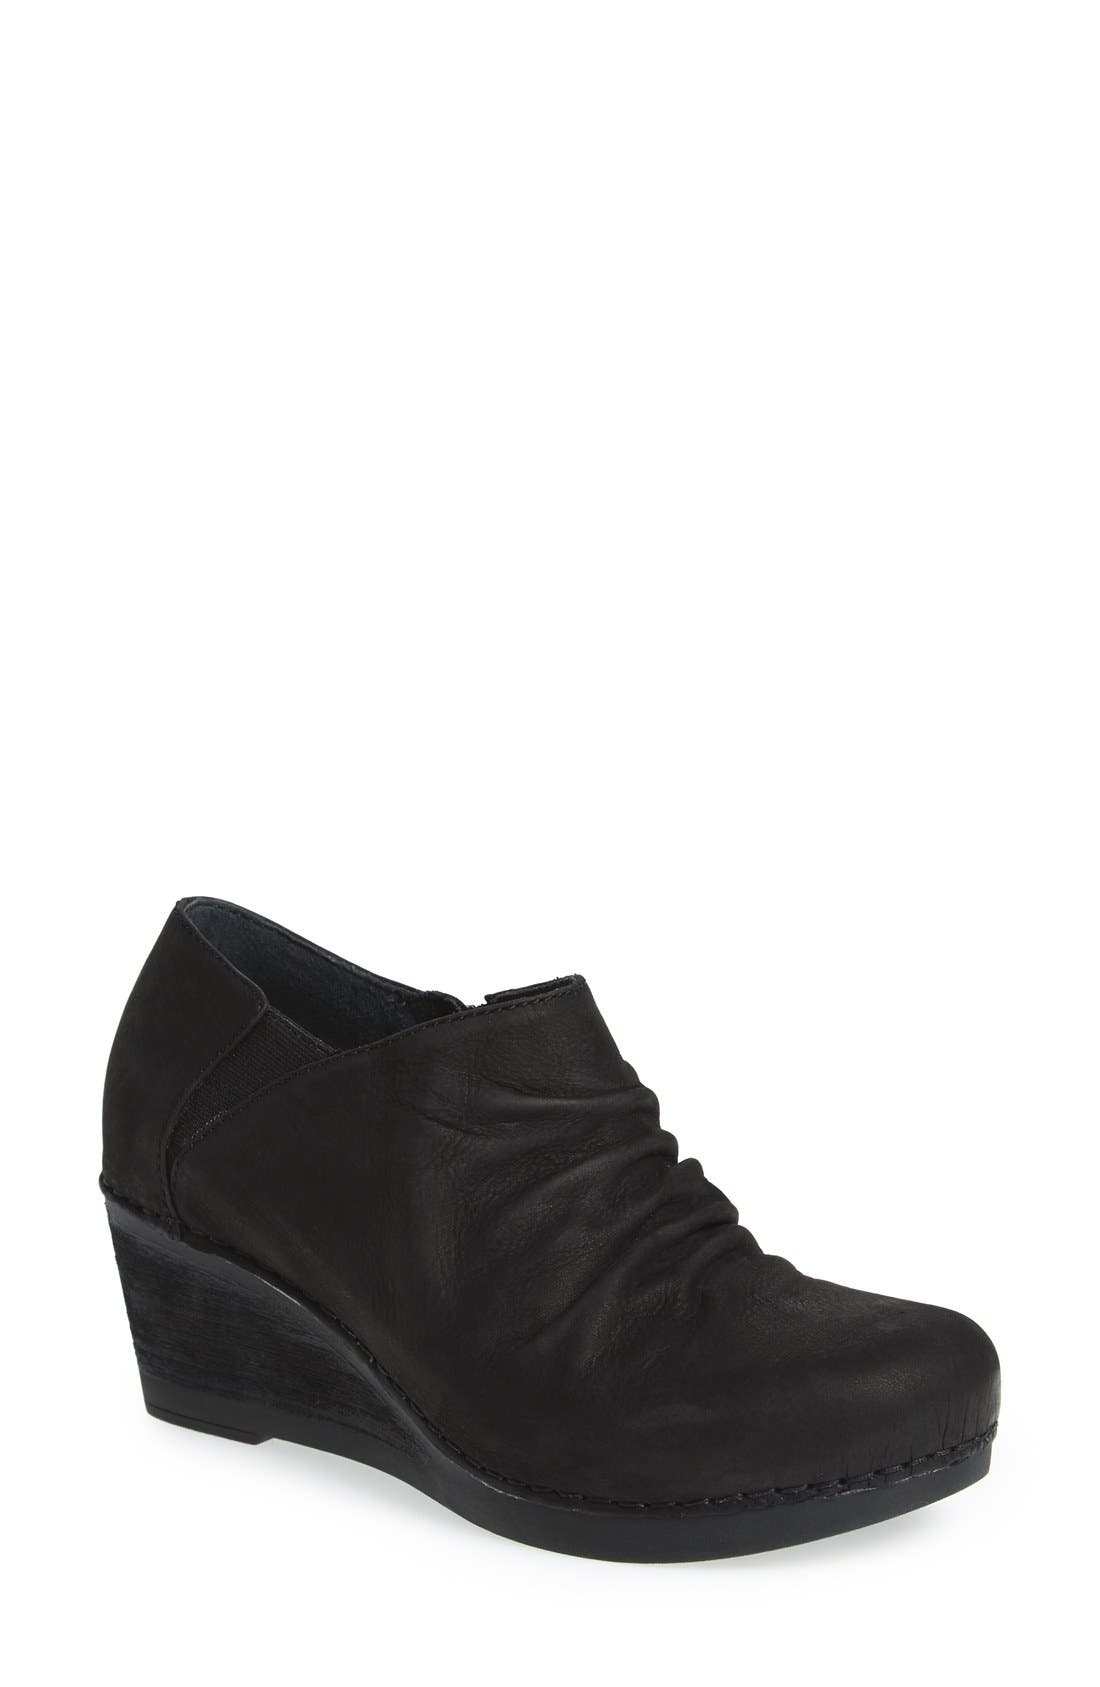 'Sheena' Slouchy Wedge Bootie,                             Main thumbnail 1, color,                             Black Nubuck Leather